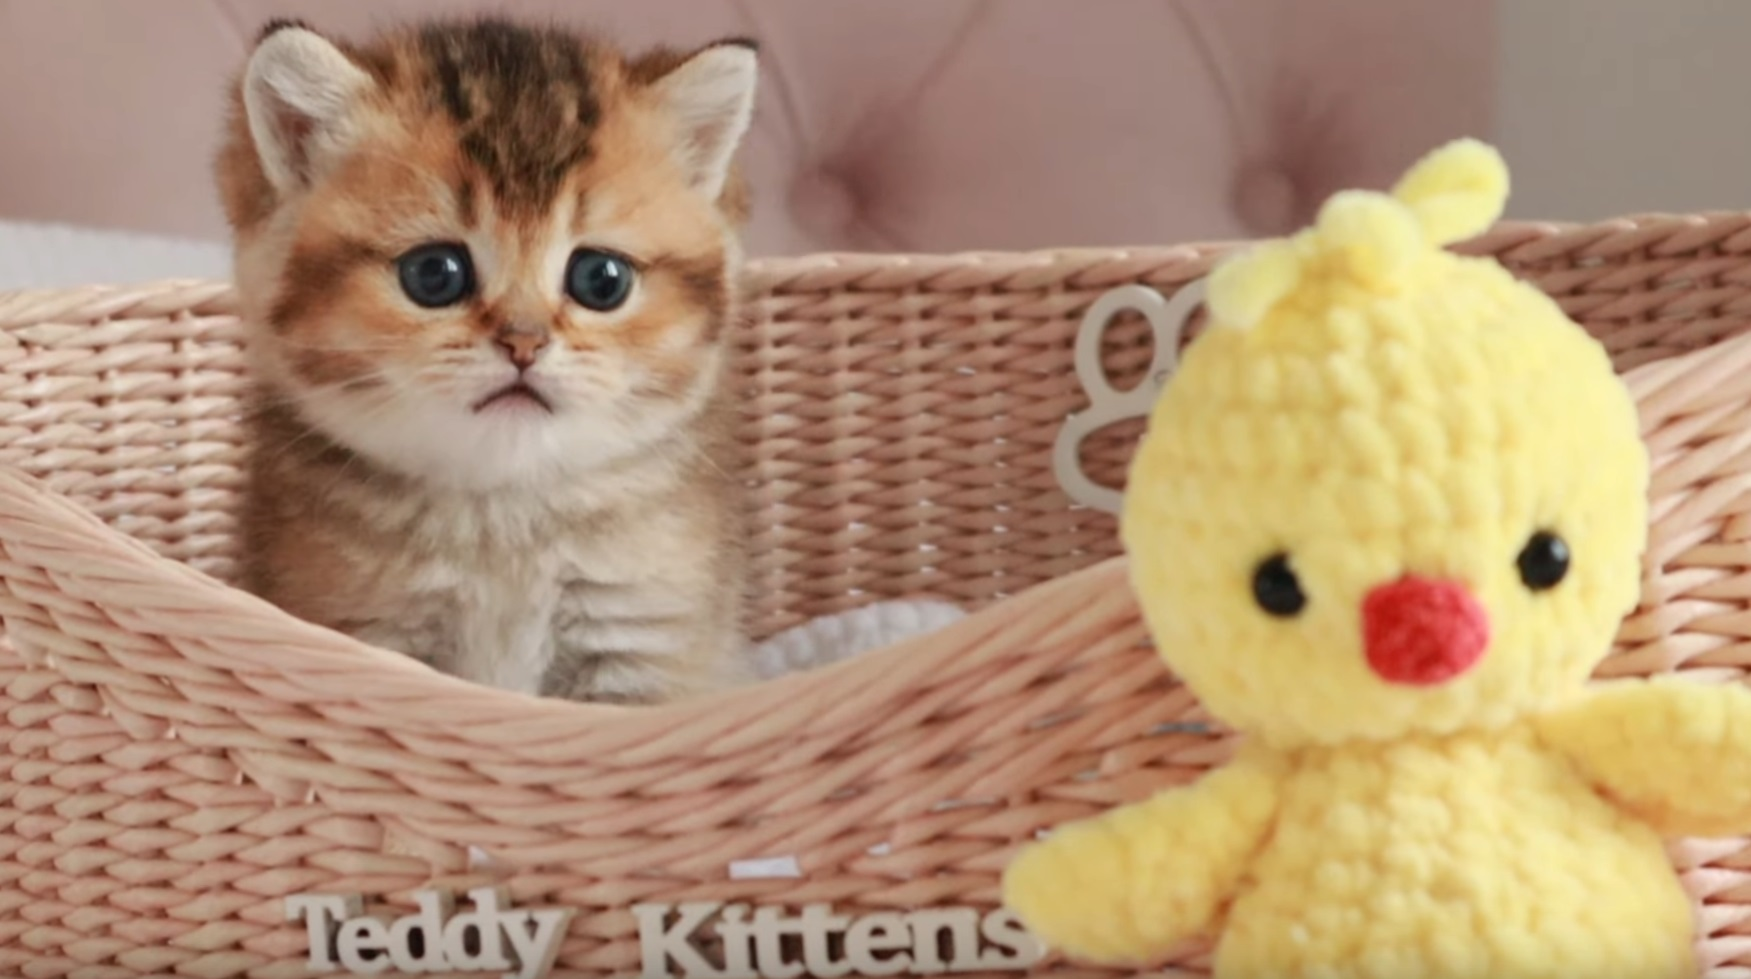 This Kitten Is Too Cute